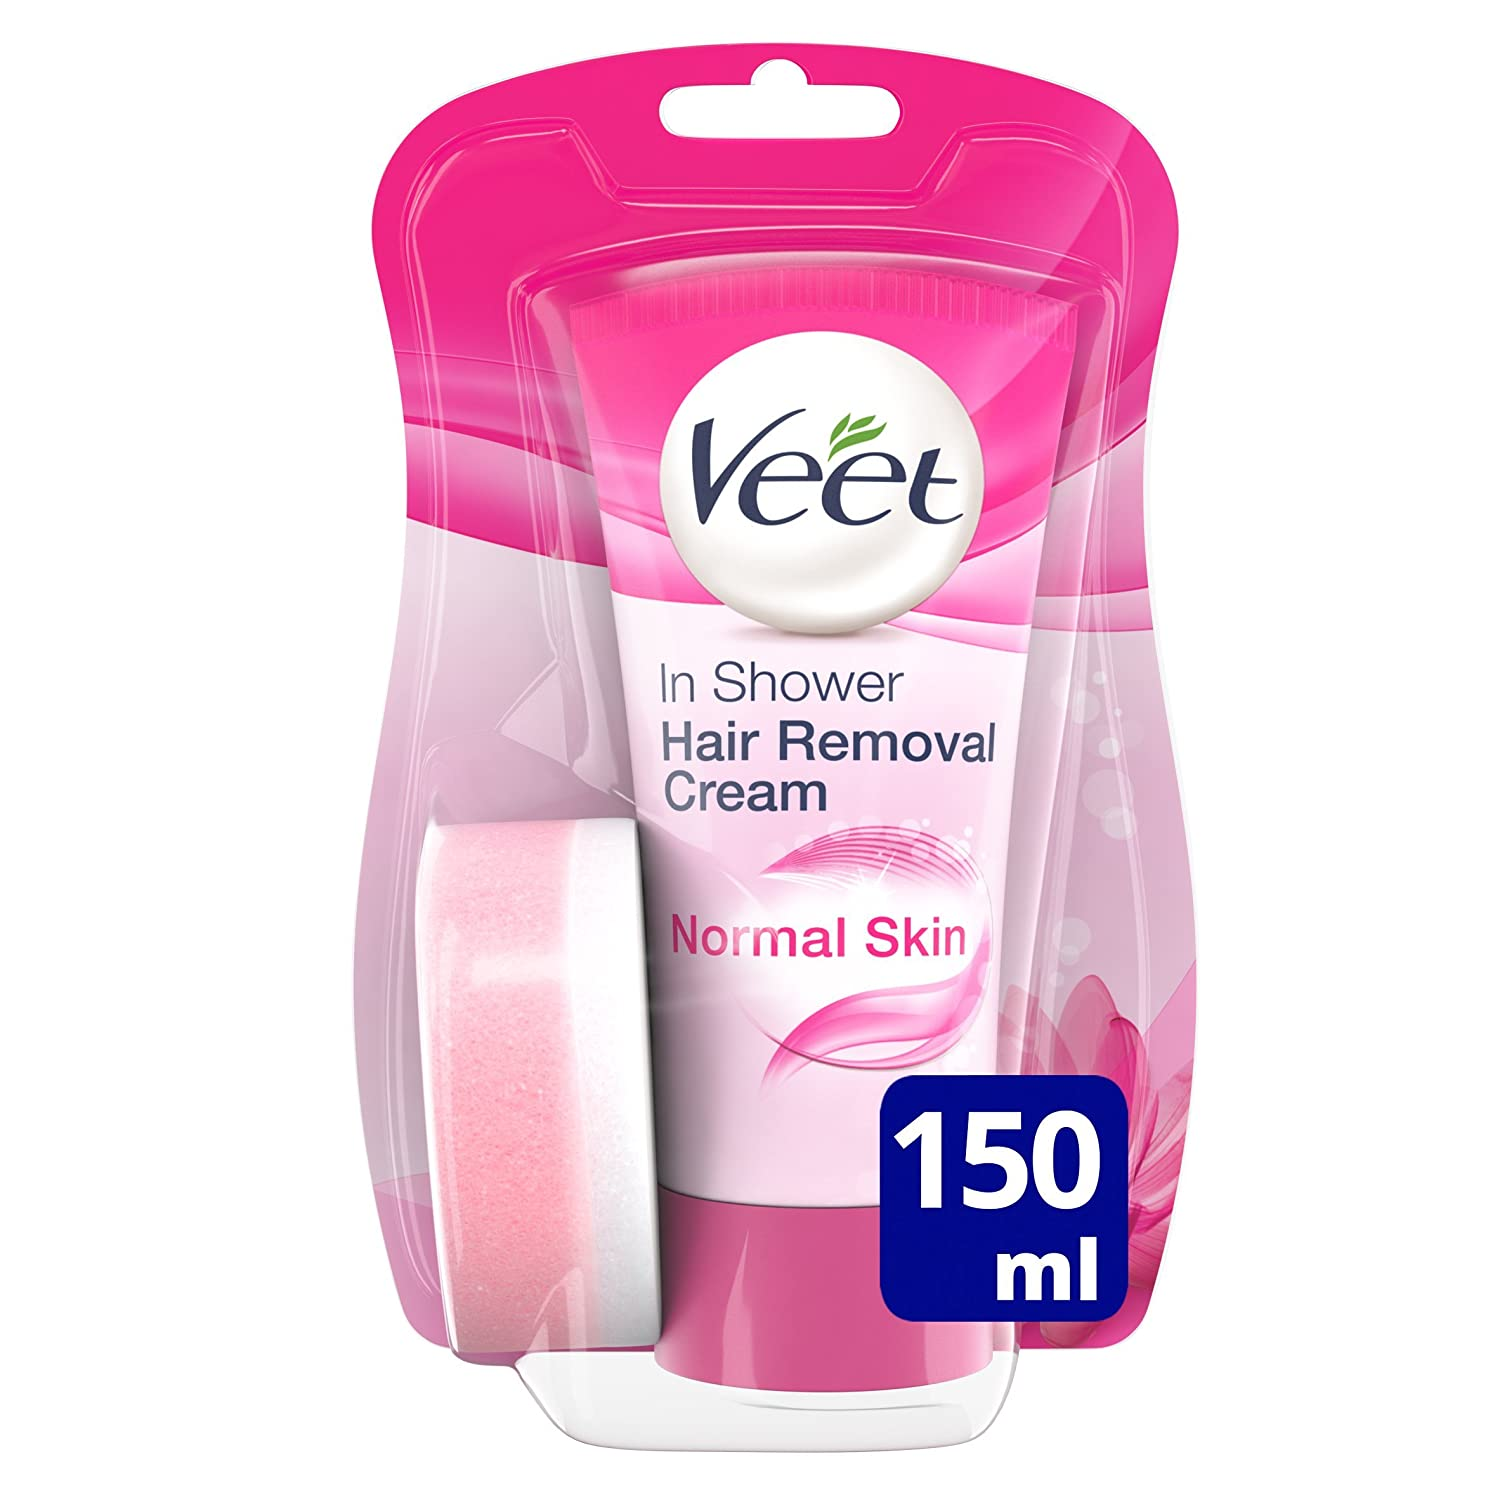 Veet In Shower Hair Removal Cream Normal Skin with Lotus Milk & Jasmine (150ml) 84282